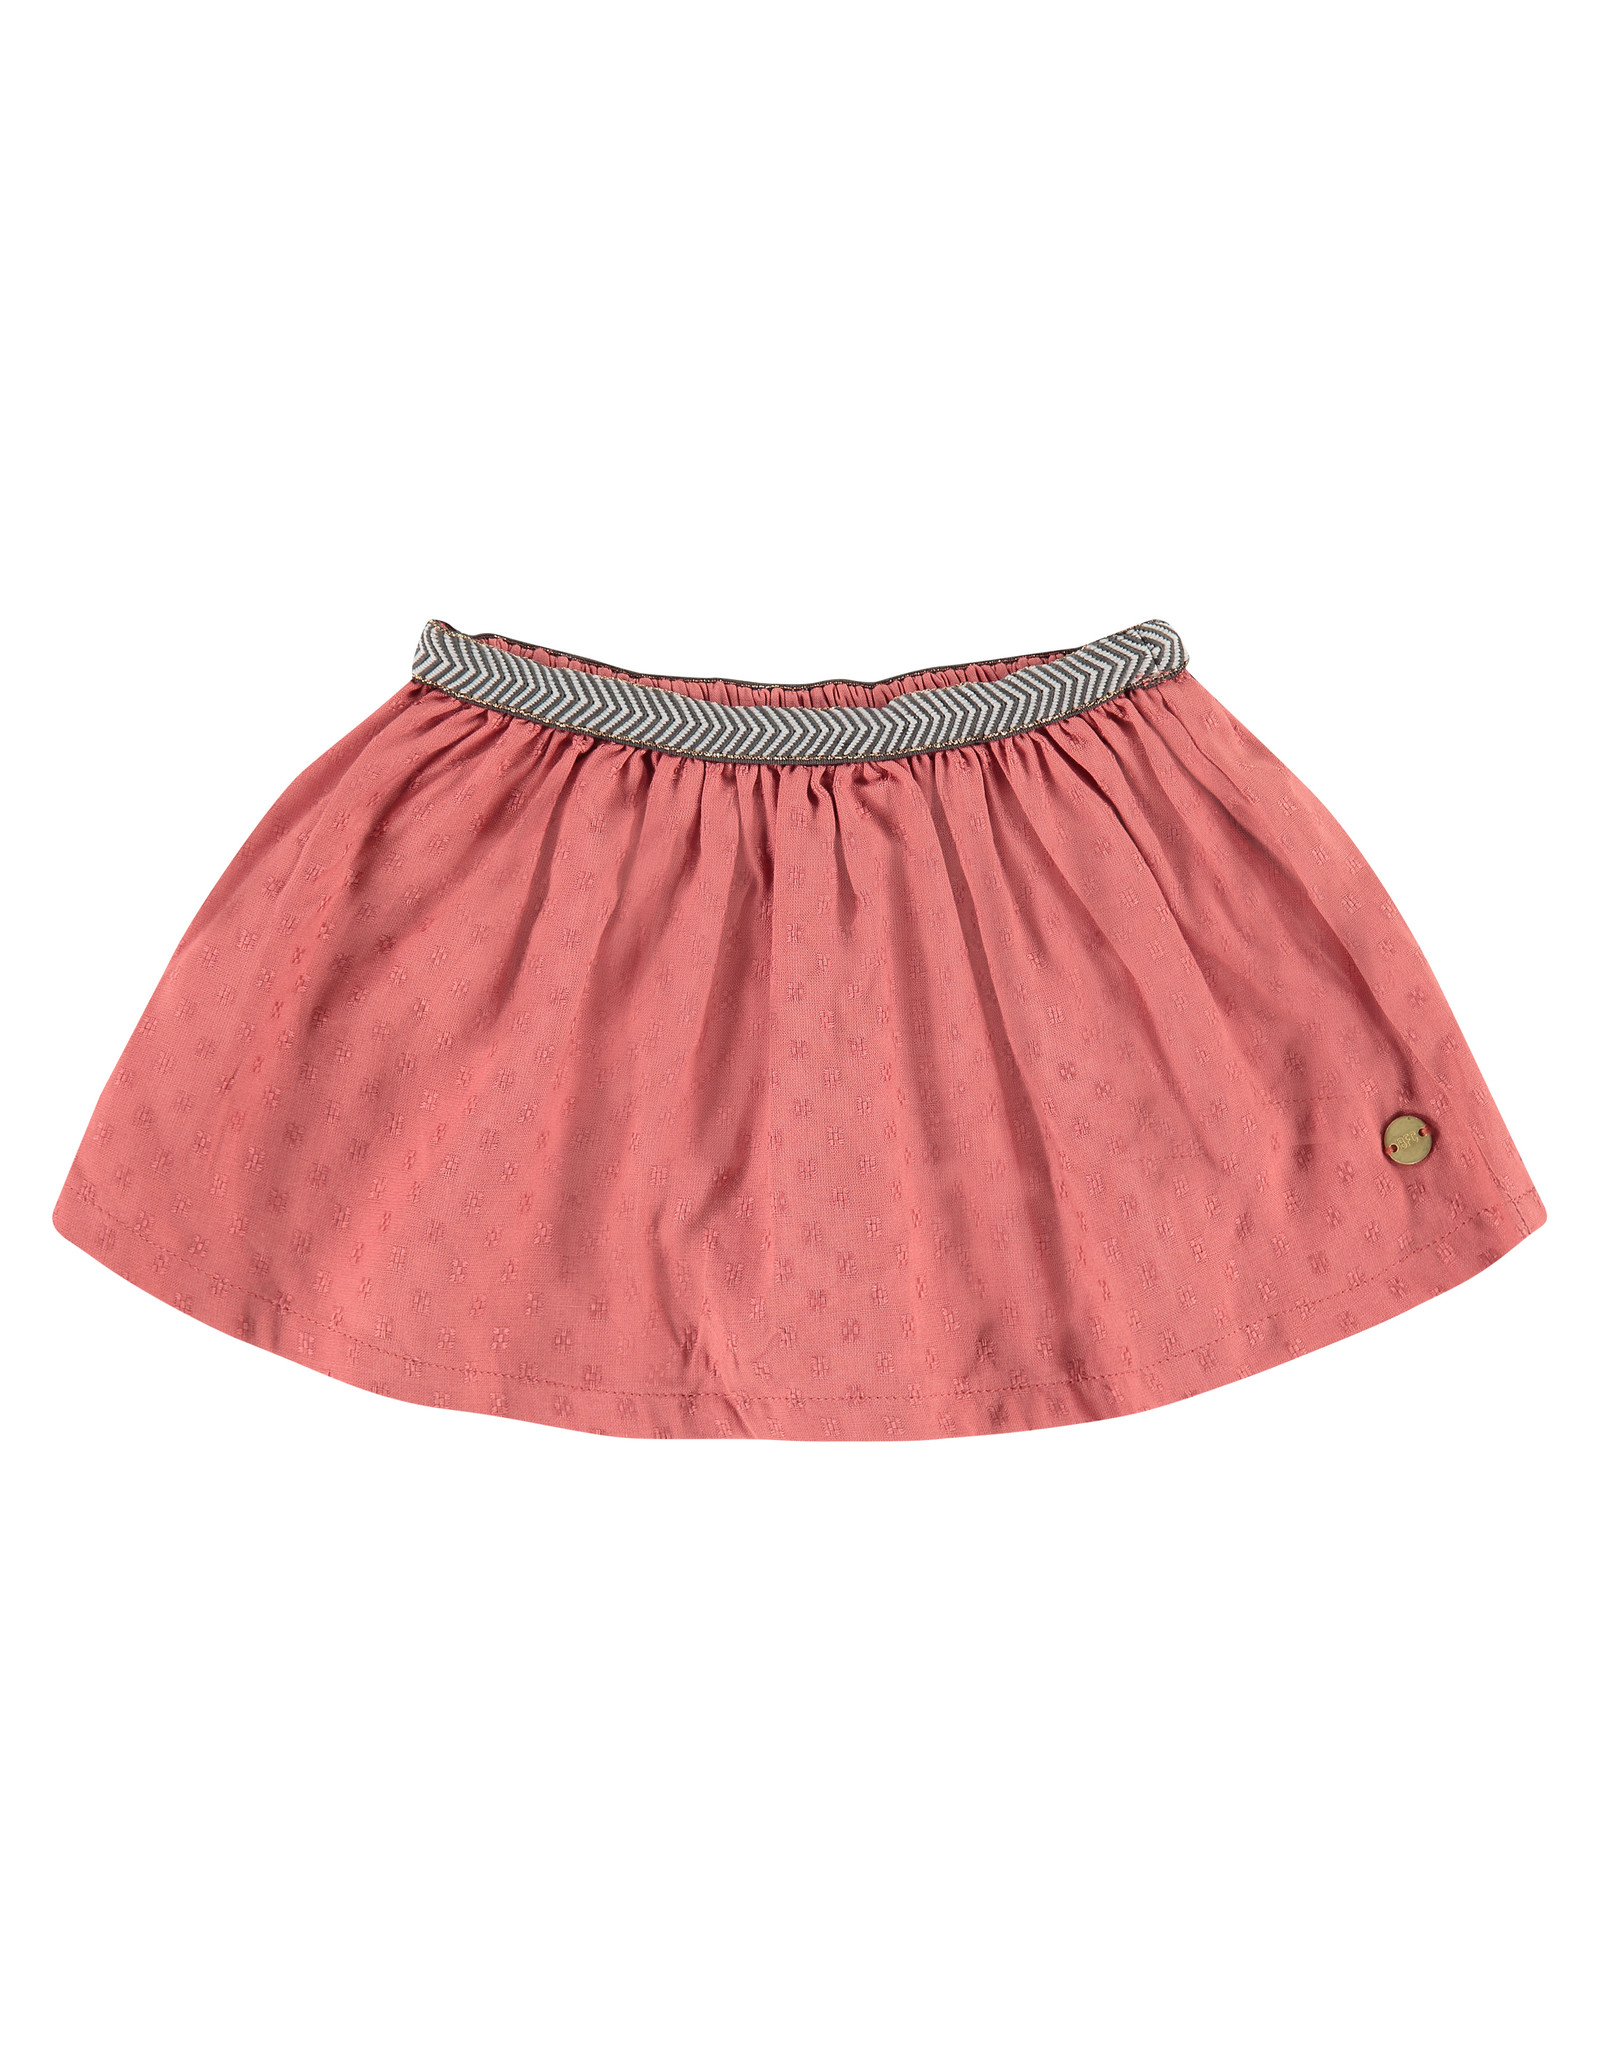 Babyface girls skirt, faded rose, BBE21108800